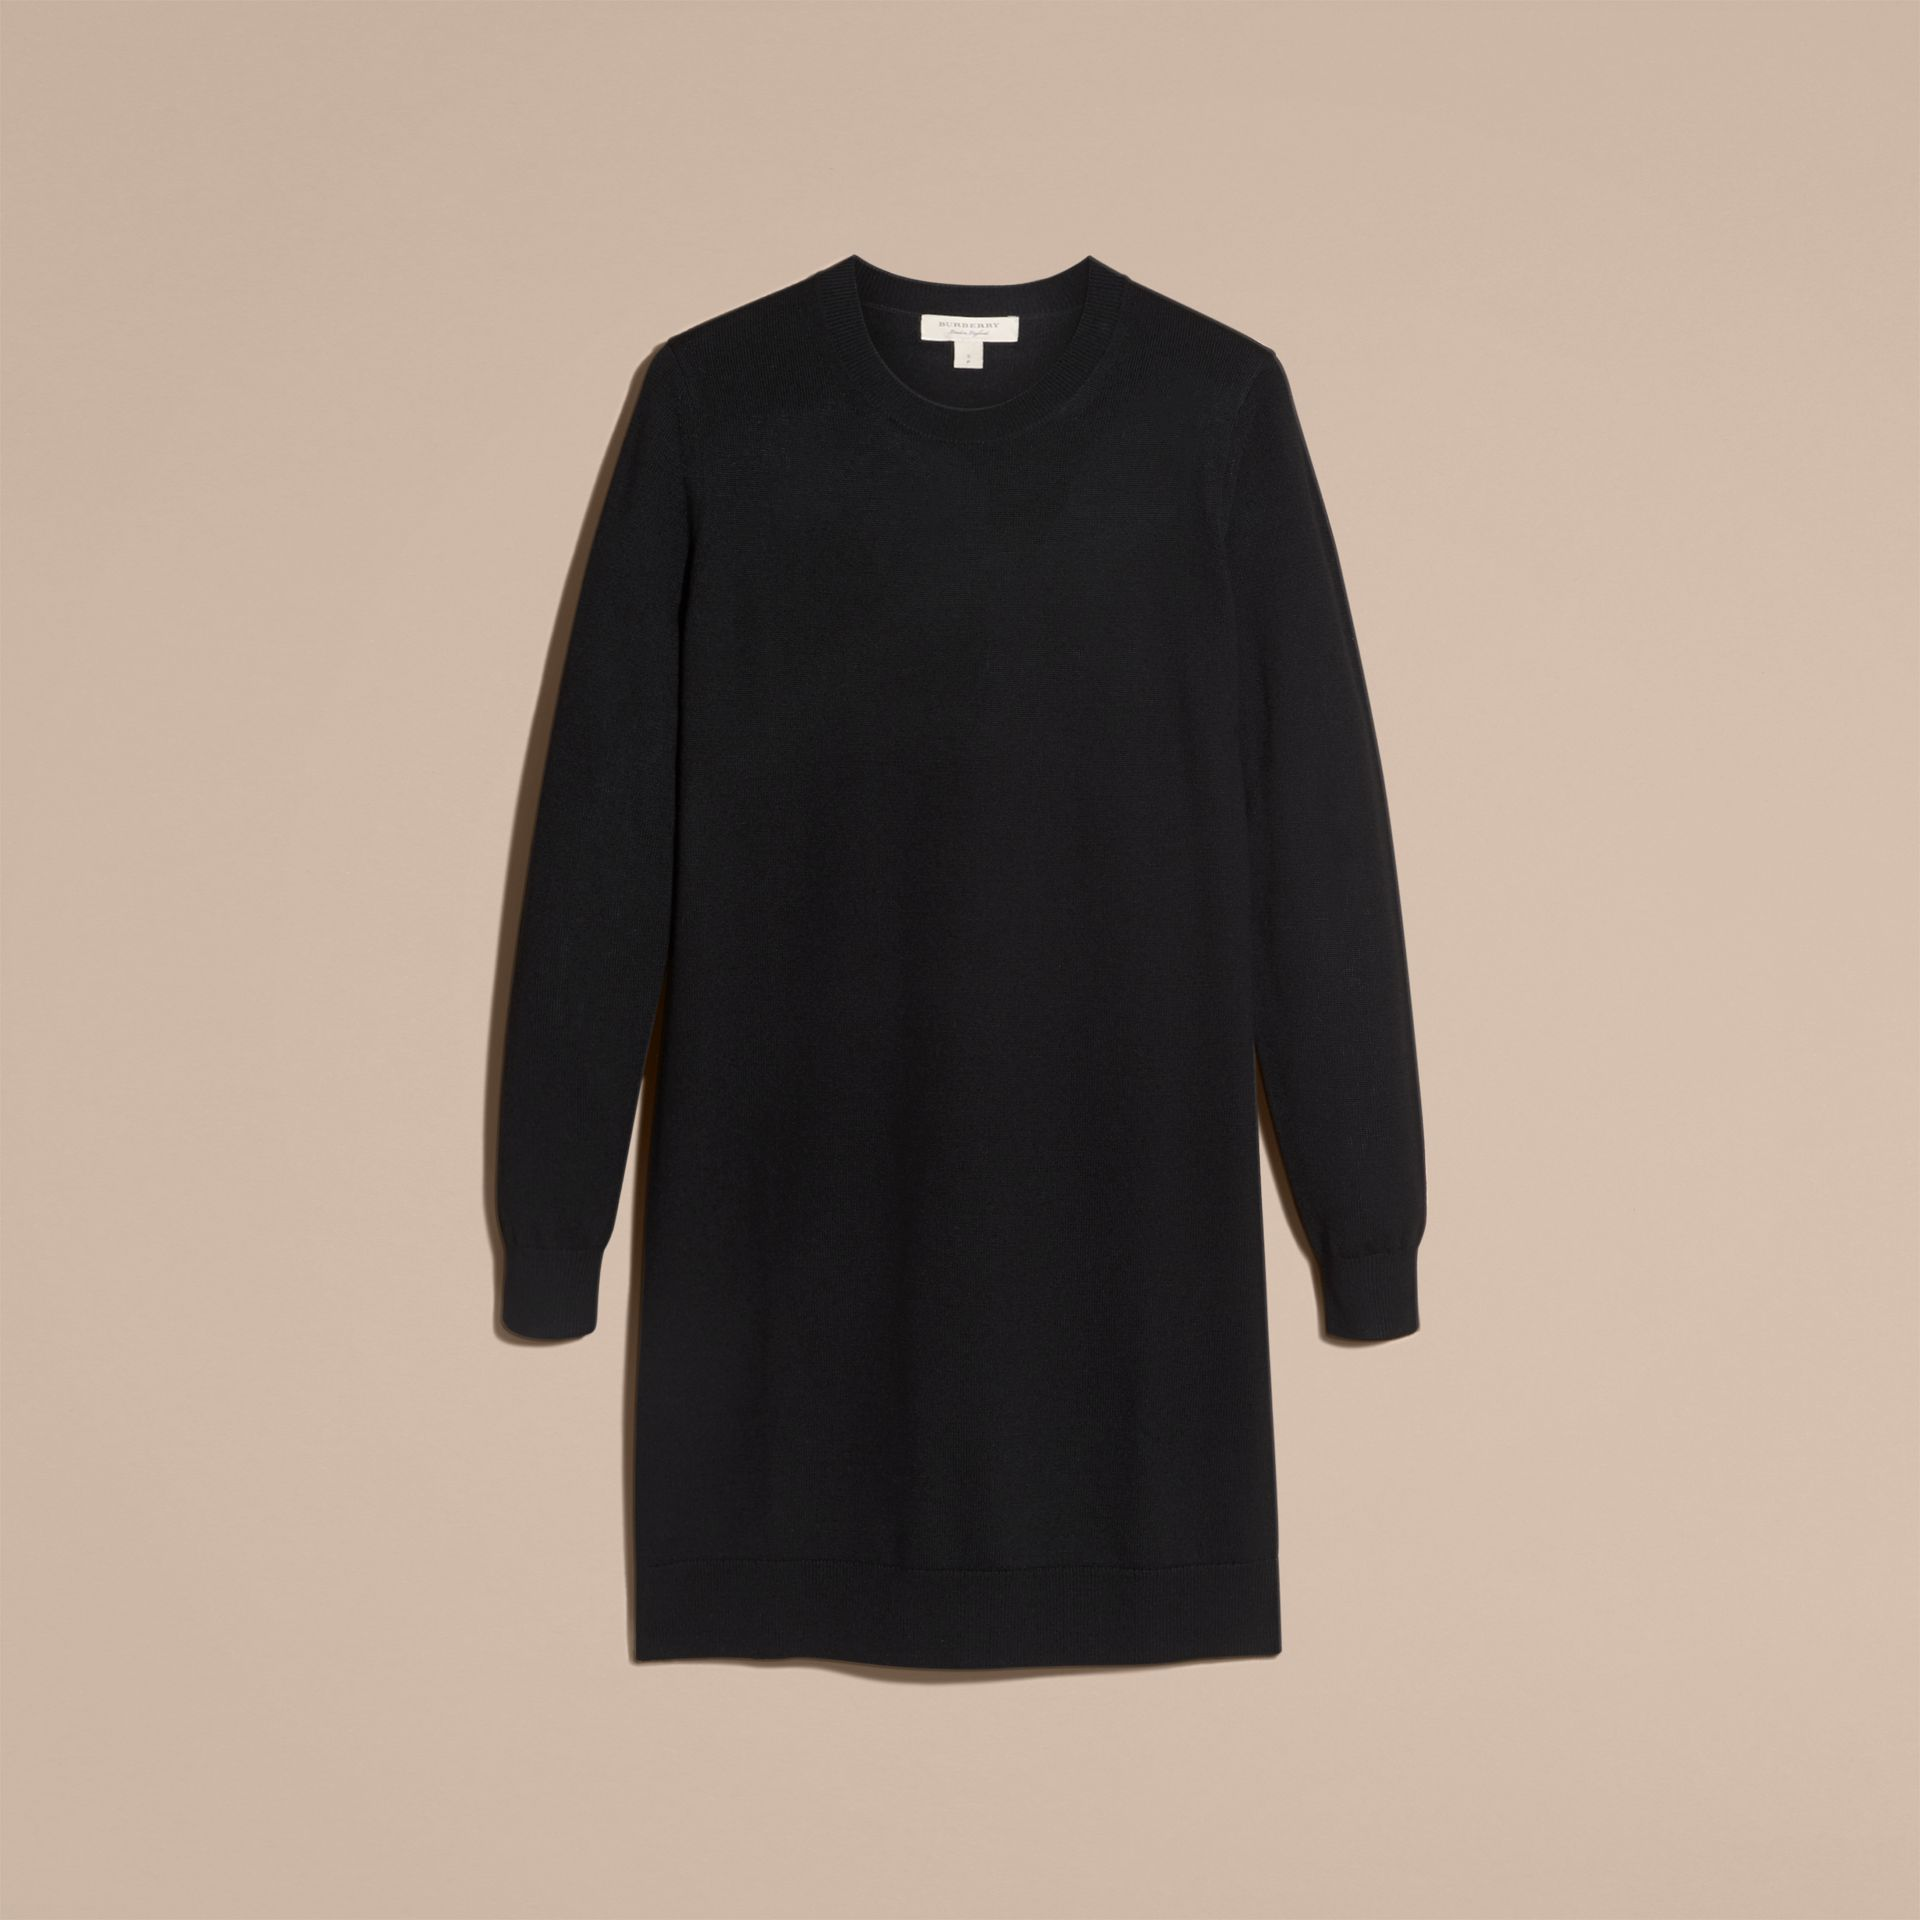 Check Elbow Detail Merino Wool Sweater Dress Black - gallery image 4